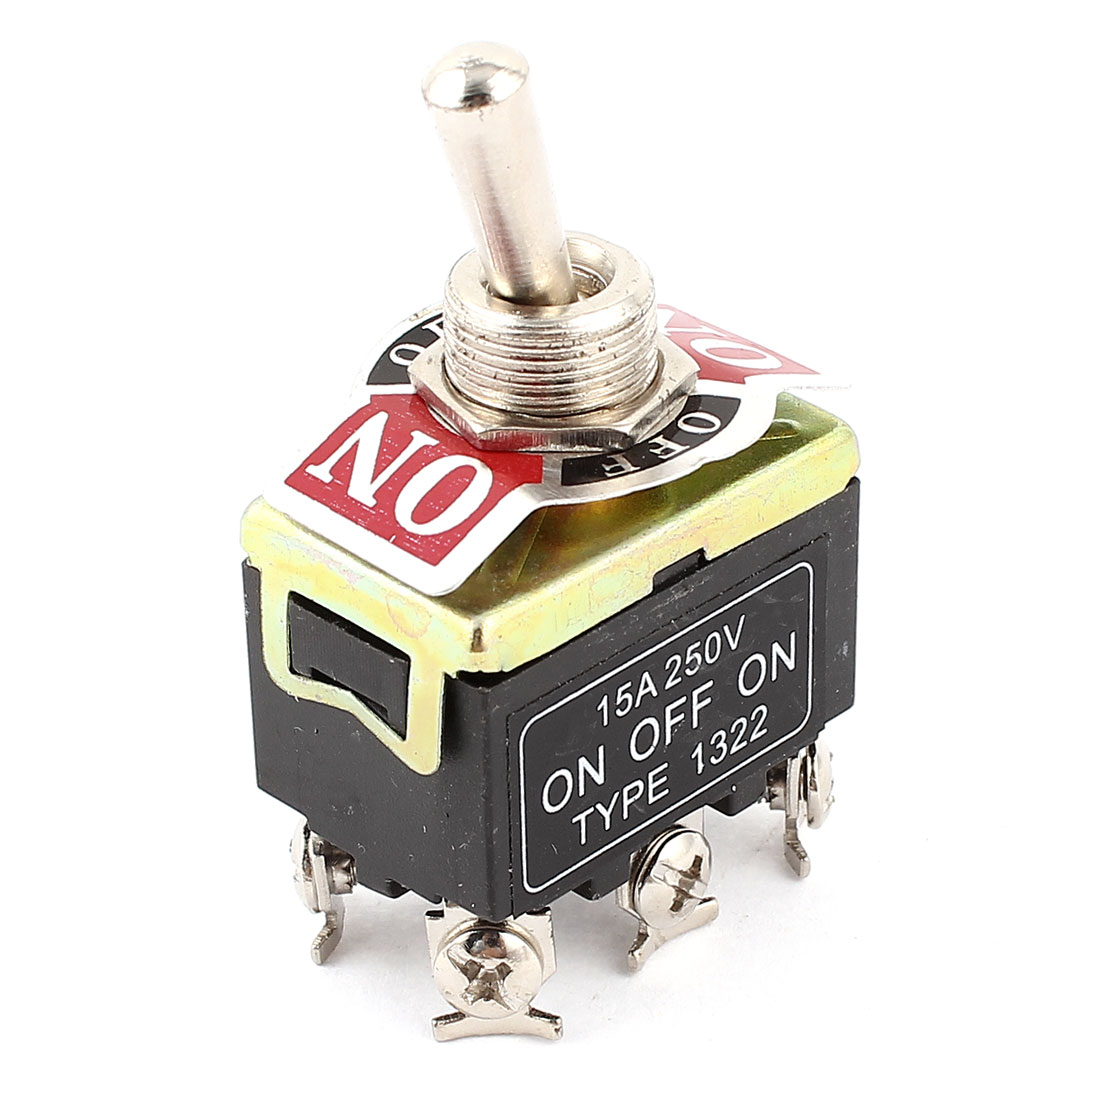 AC 250V 15A DPDT ON/OFF/ON 3 Position 6 Pin Toggle Switch Black